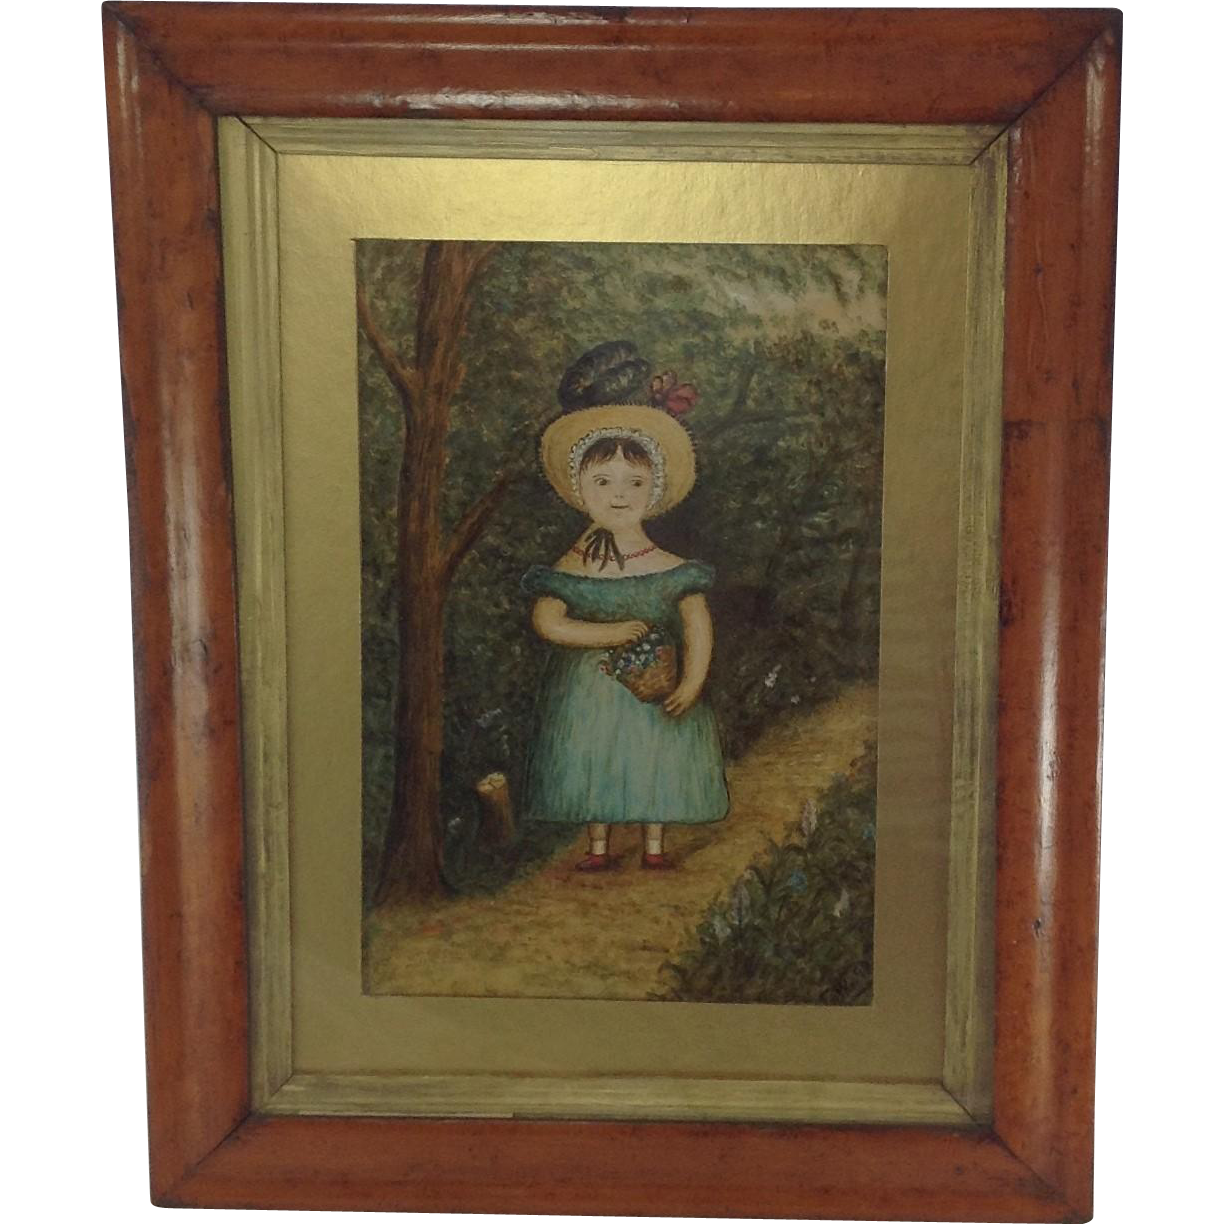 Fabulous Primitive Oil Painting On Board Signed And Dated